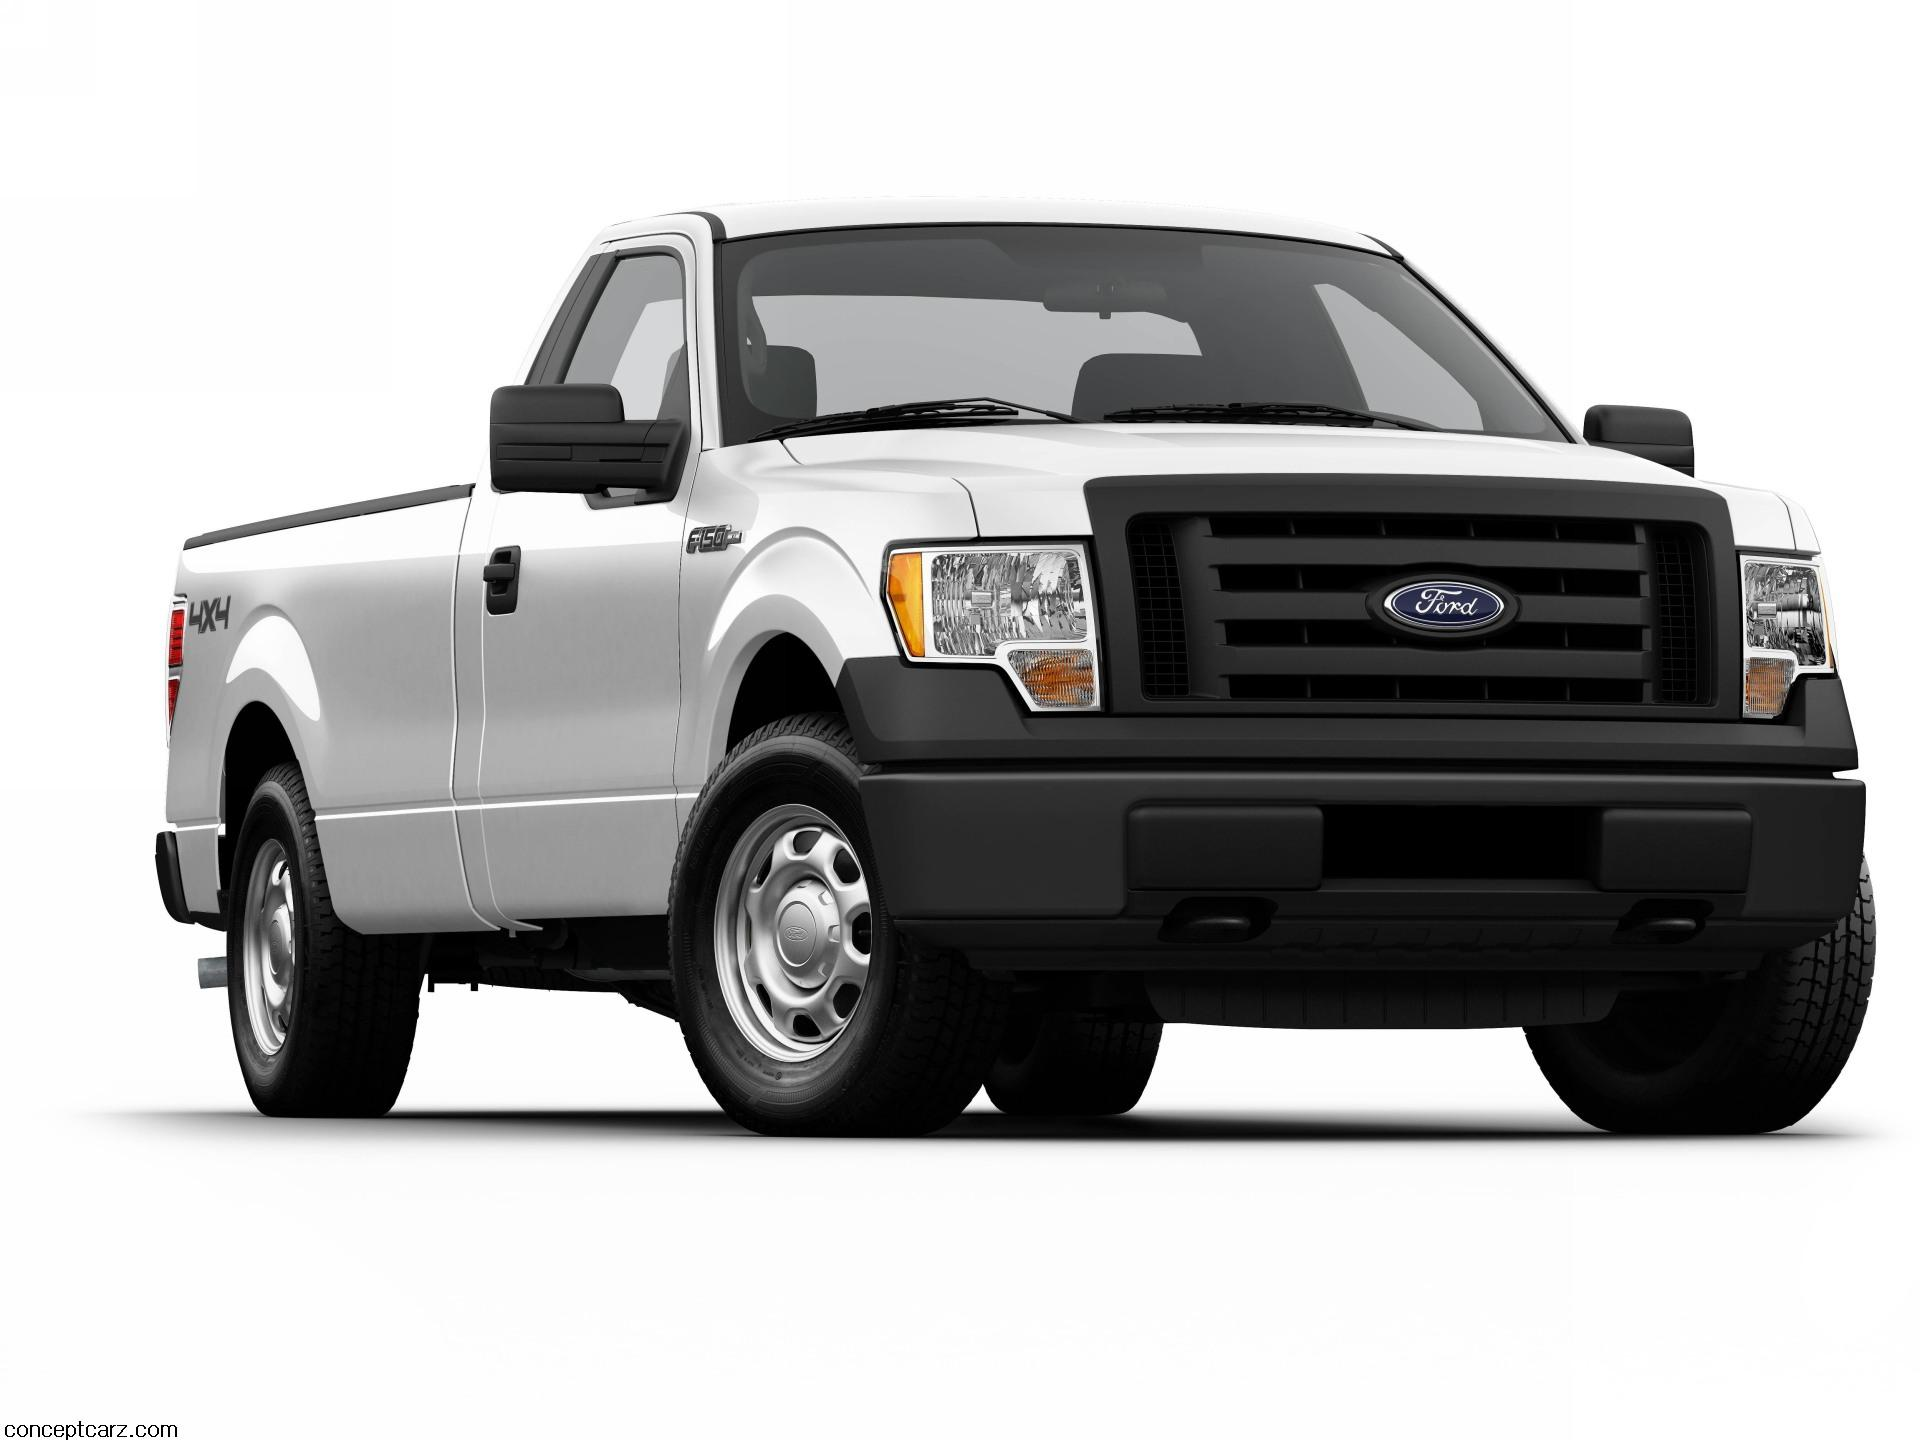 2011 ford f 150. Black Bedroom Furniture Sets. Home Design Ideas